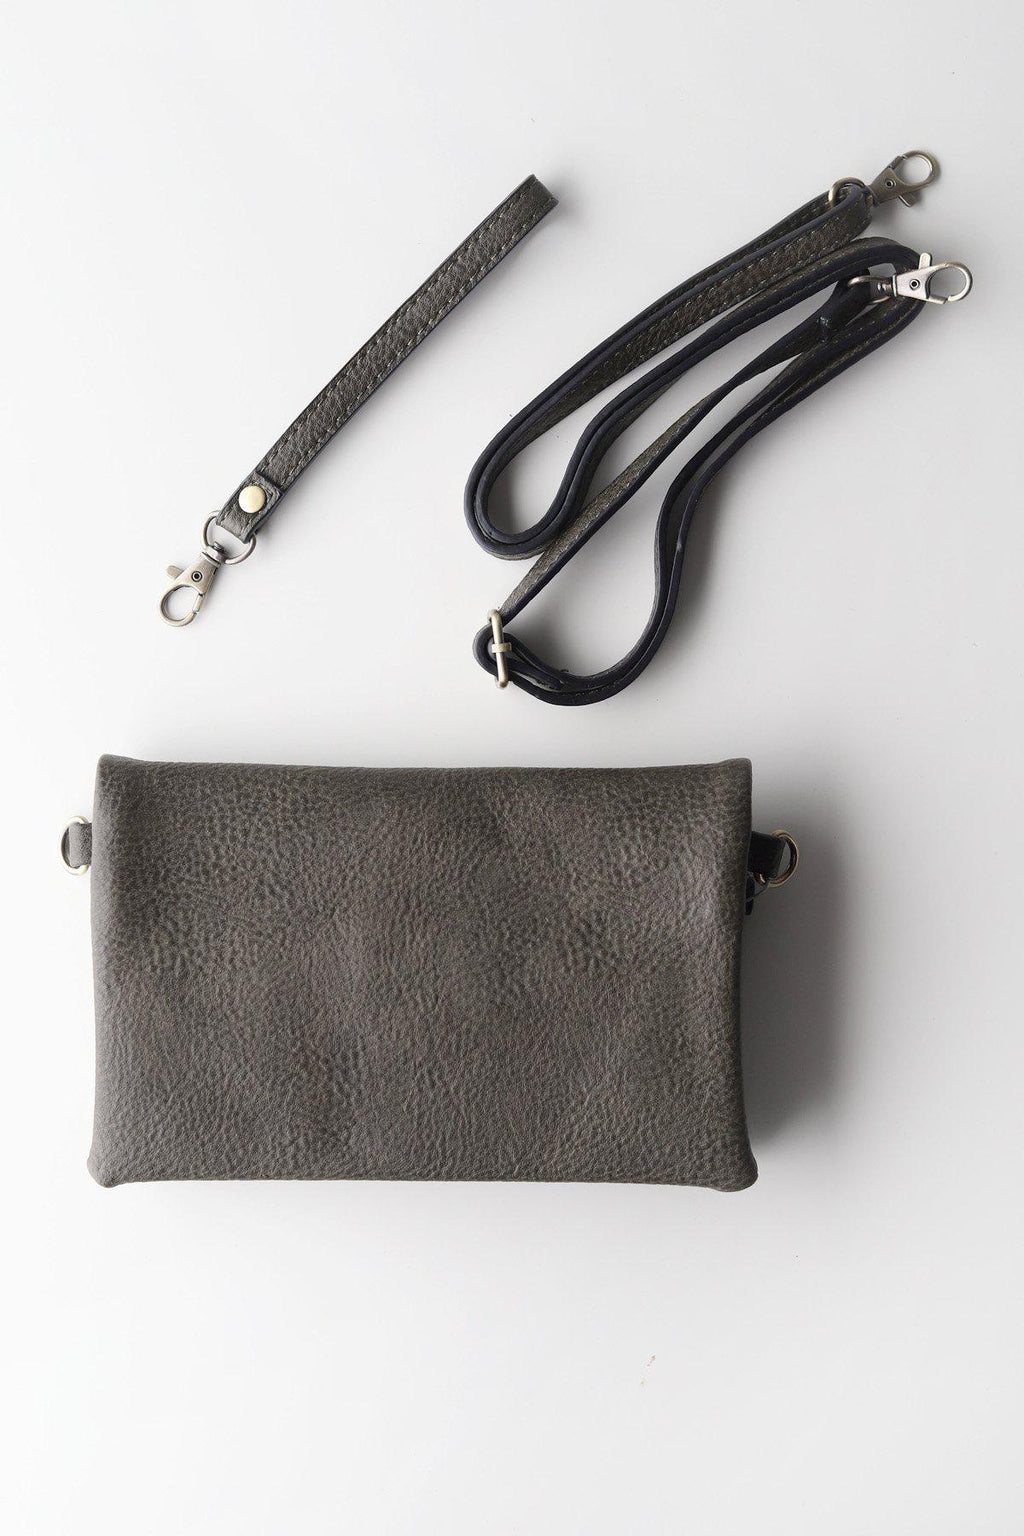 Crossbody Clutch / Olive - Gallery 512 Boutique